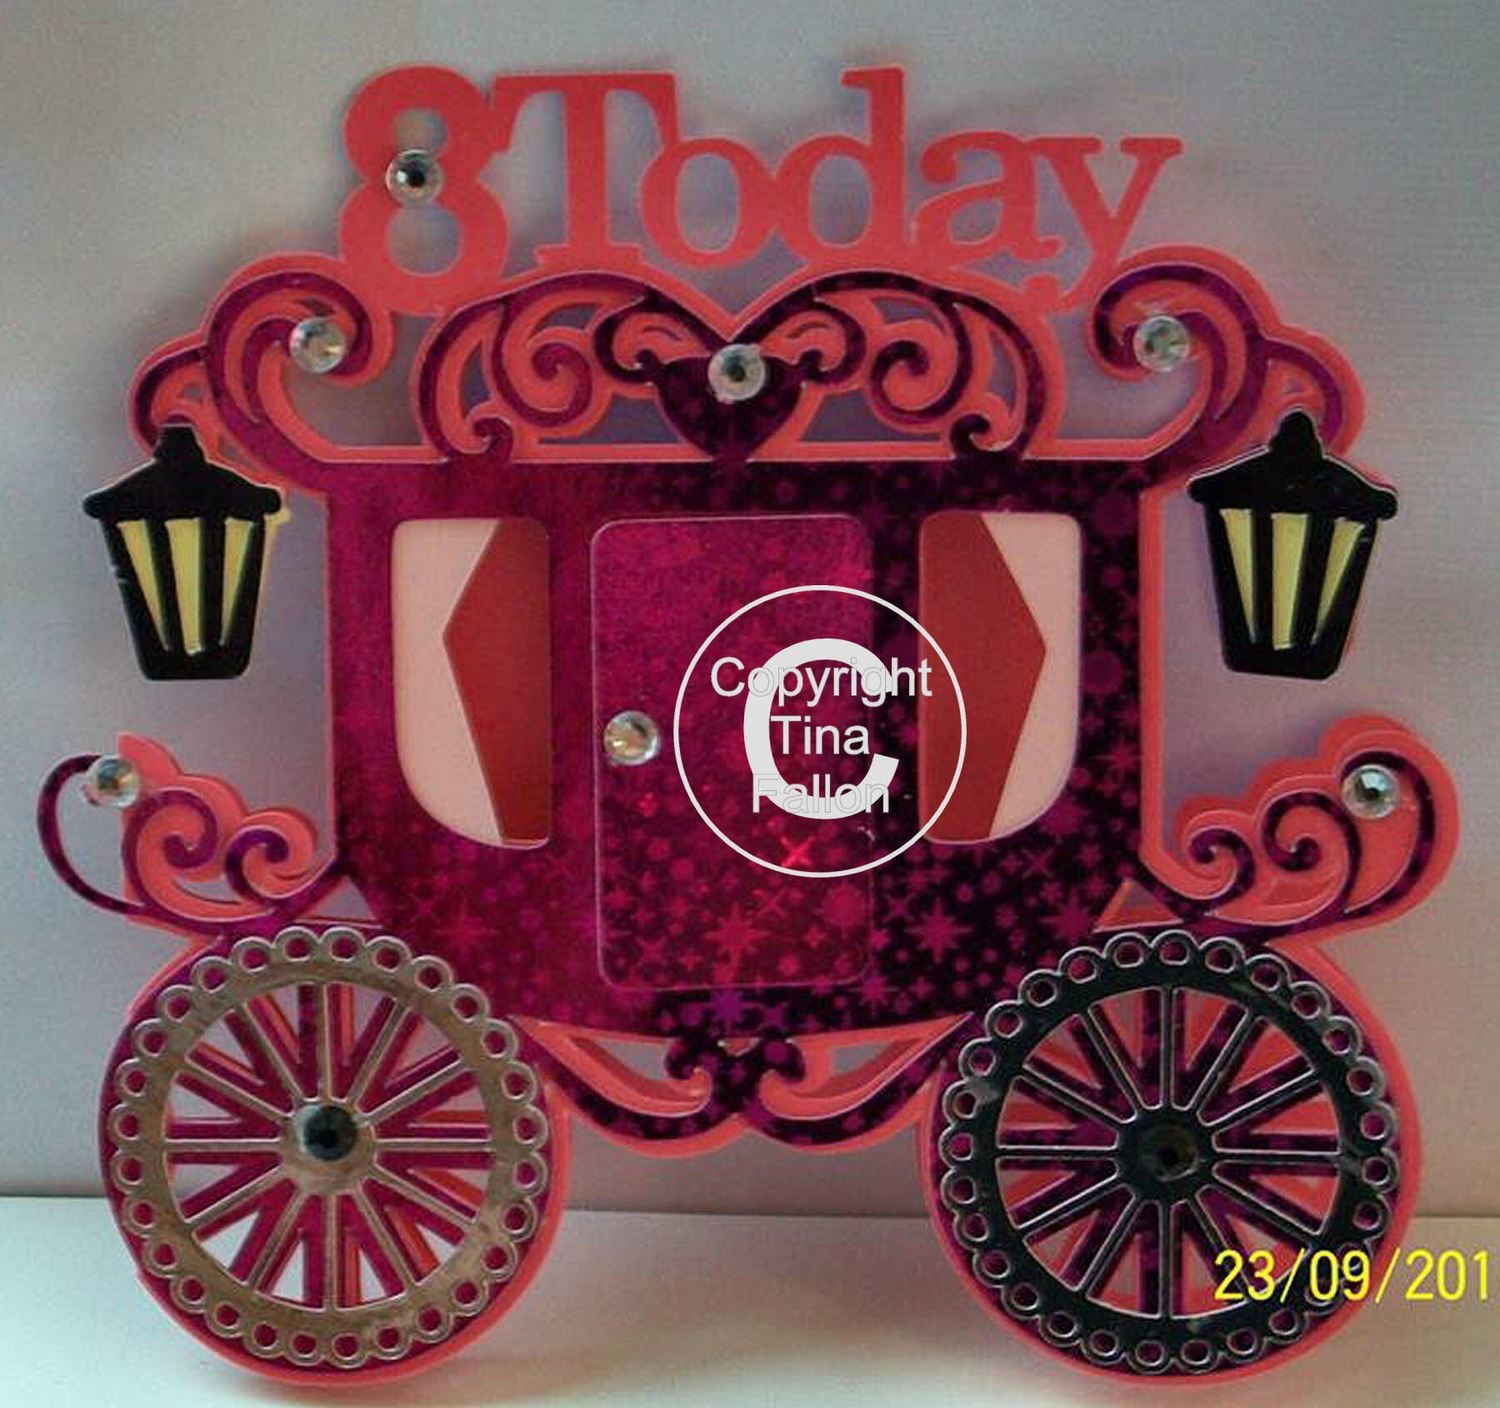 Princess Carriage 8 today Card Template